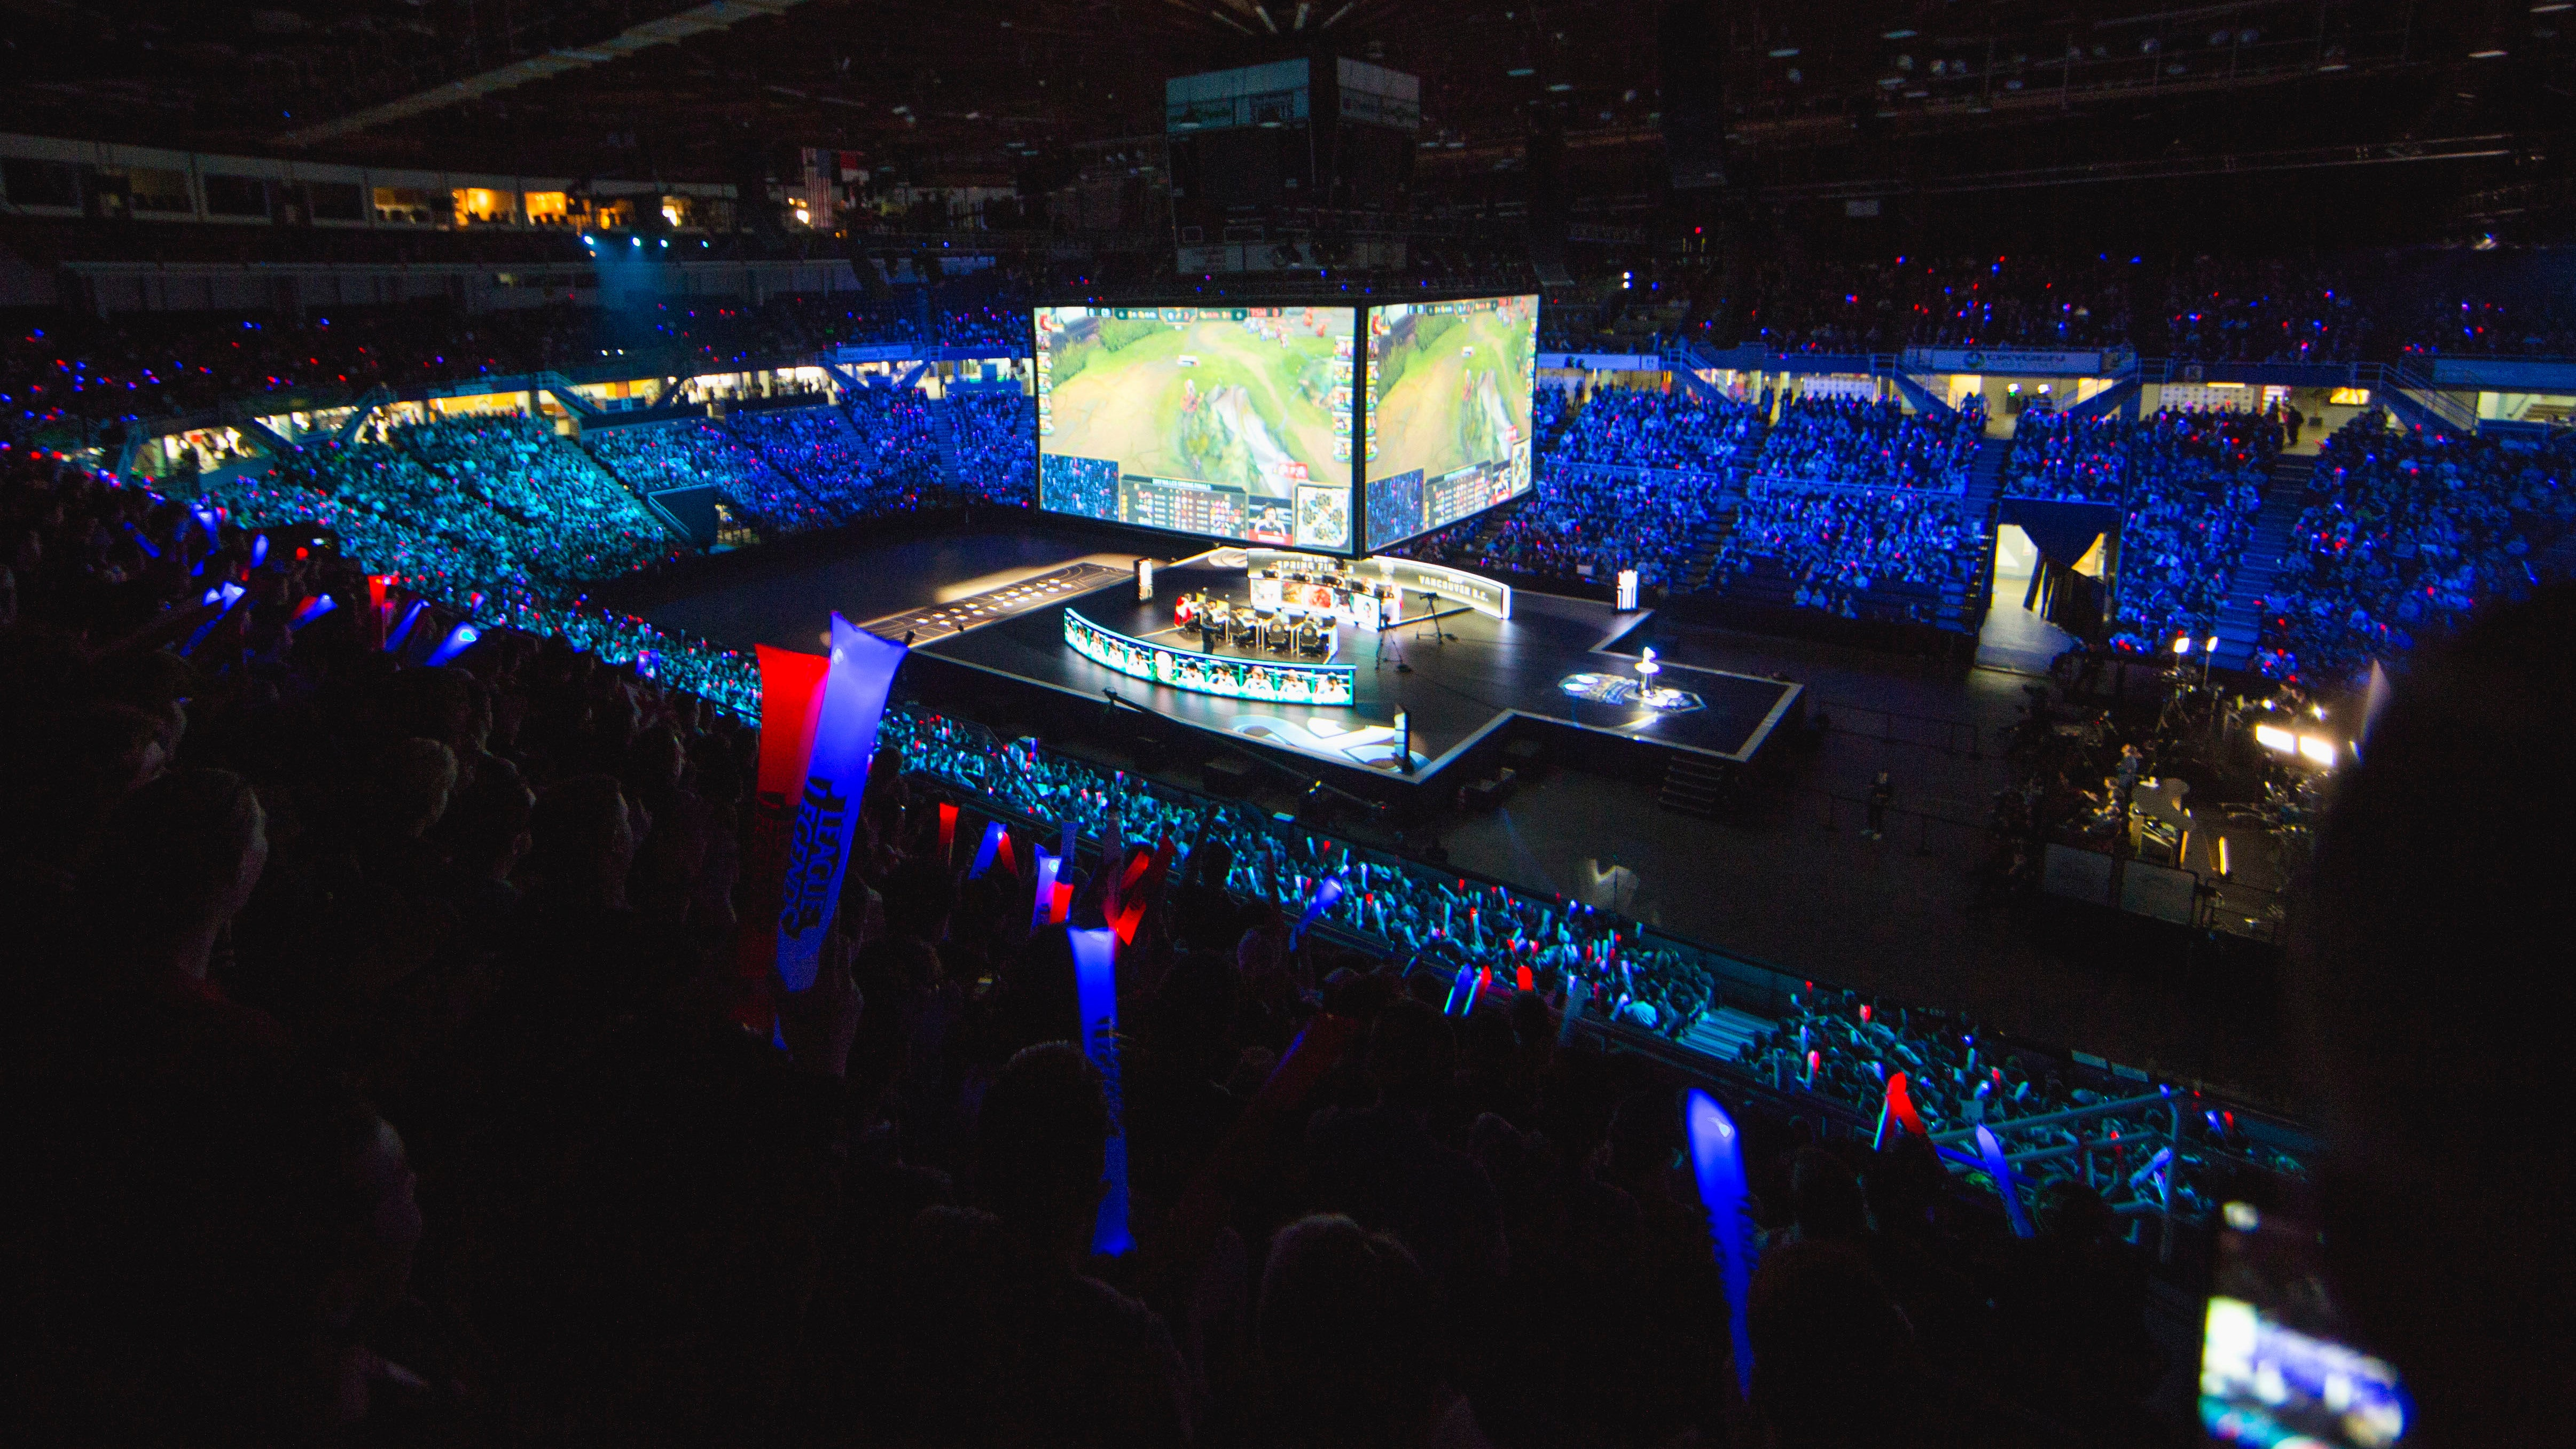 To buy into this video gaming league, it's at least $10 million